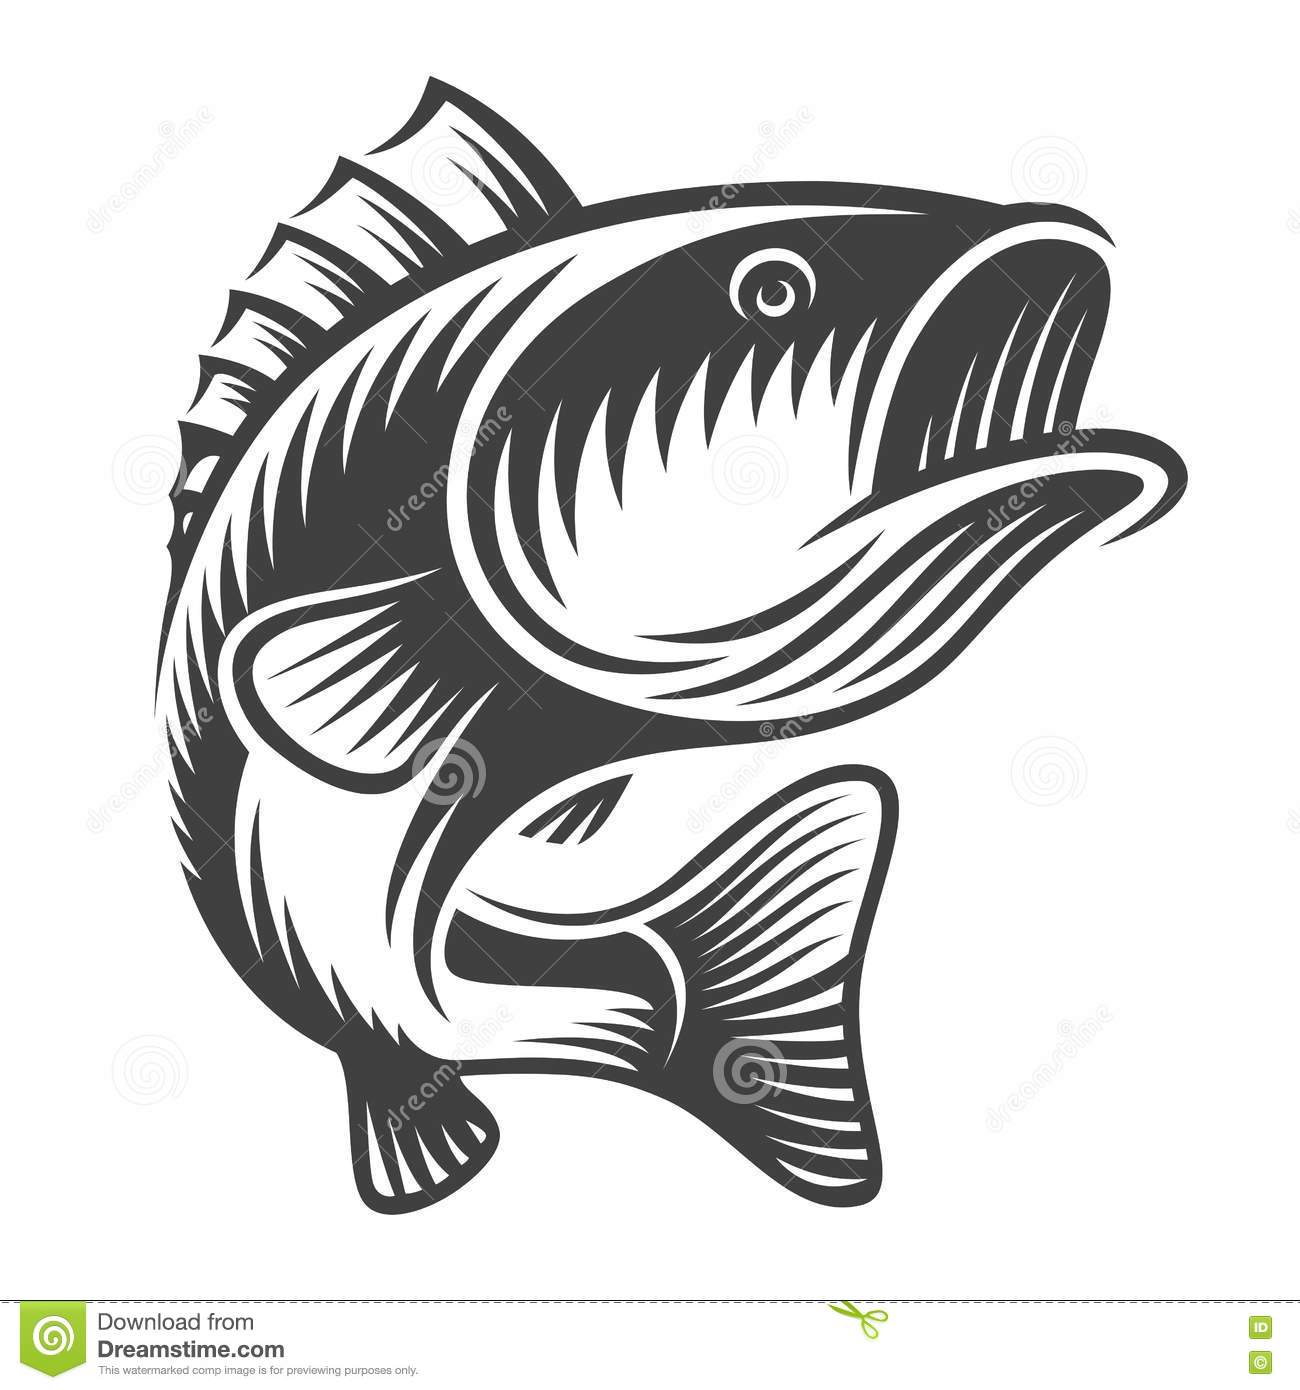 Monochrome fish bass logo stock vector. Illustration of